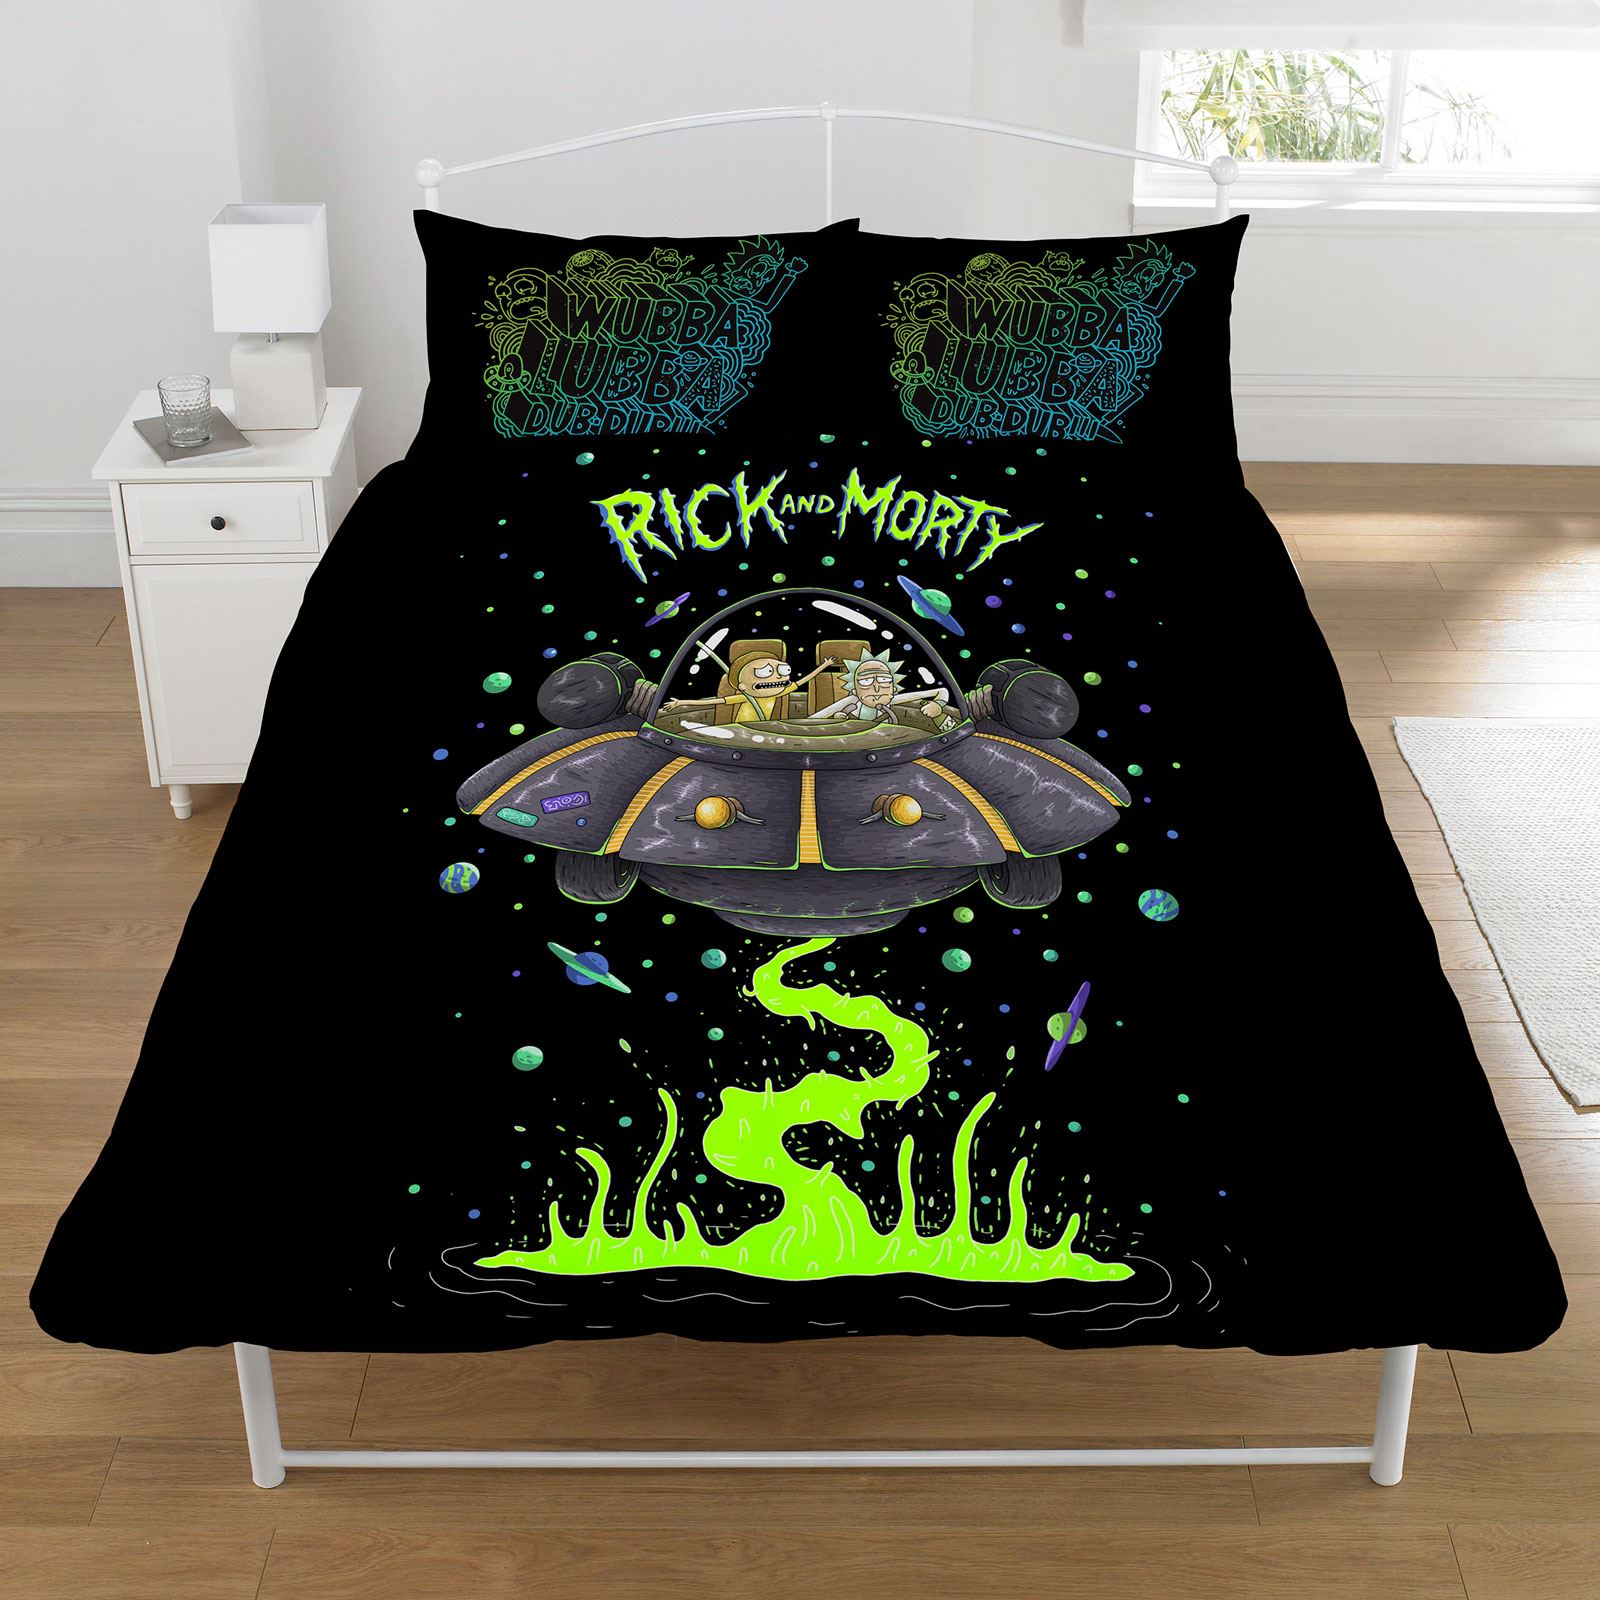 RICK AND MORTY DUVET COVER SET KIDS BEDDING SINGLE ...